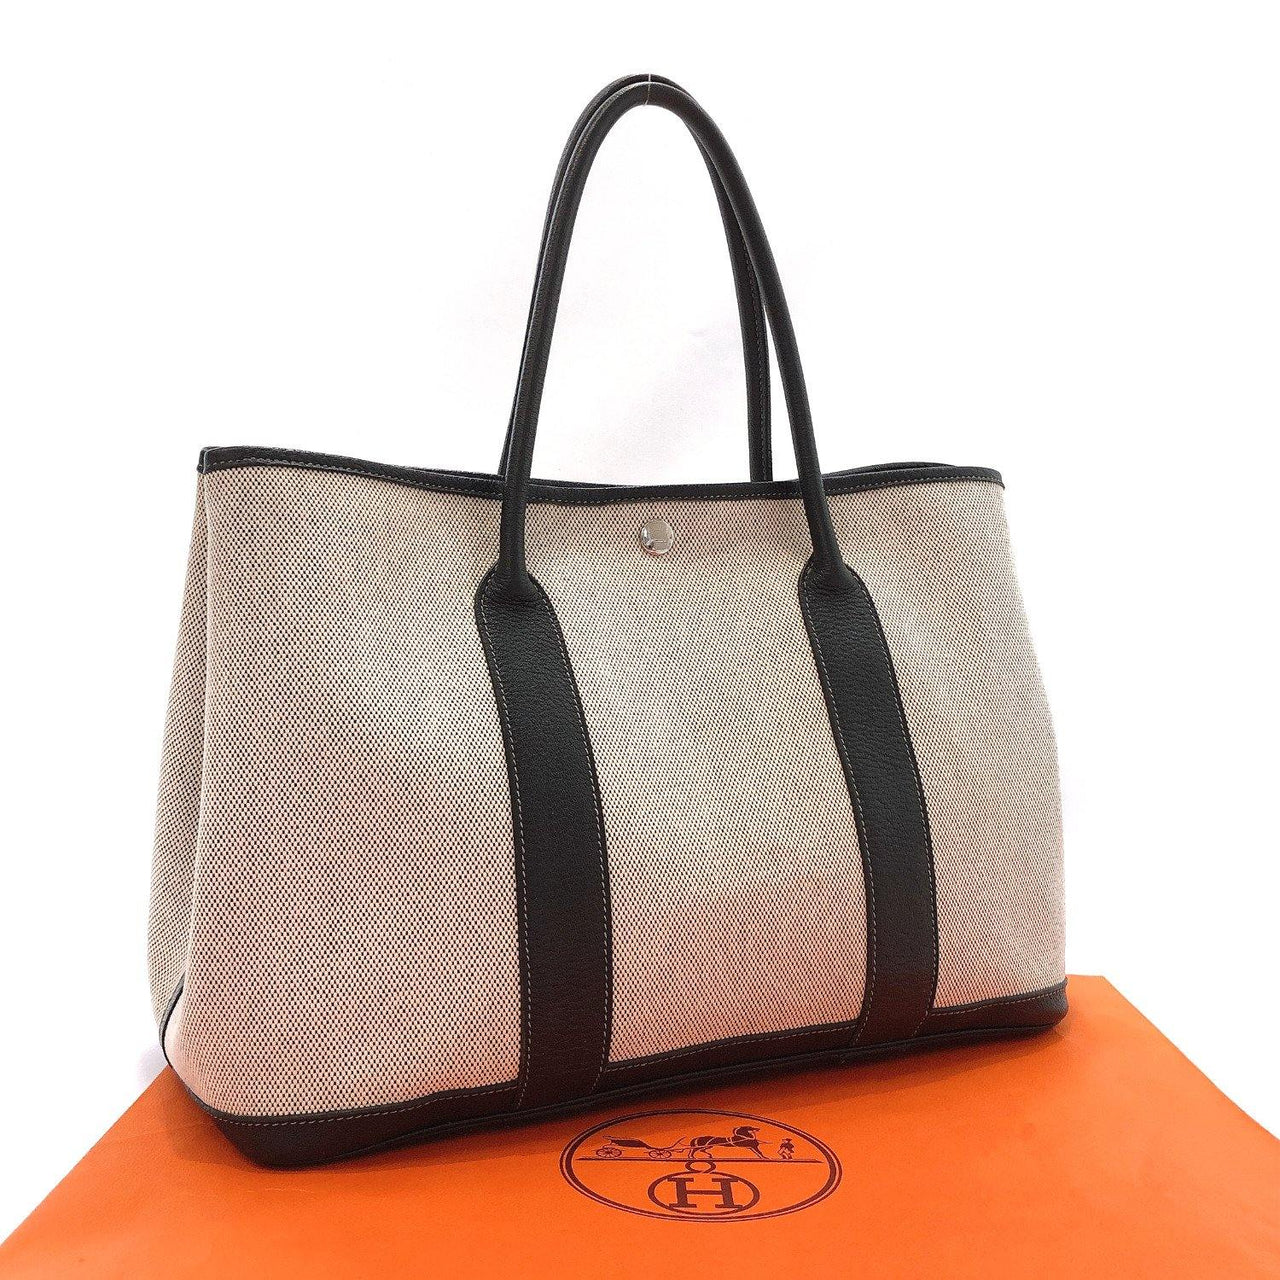 HERMES Handbag Garden party PM Tower ash gray black □J Women Used - JP-BRANDS.com